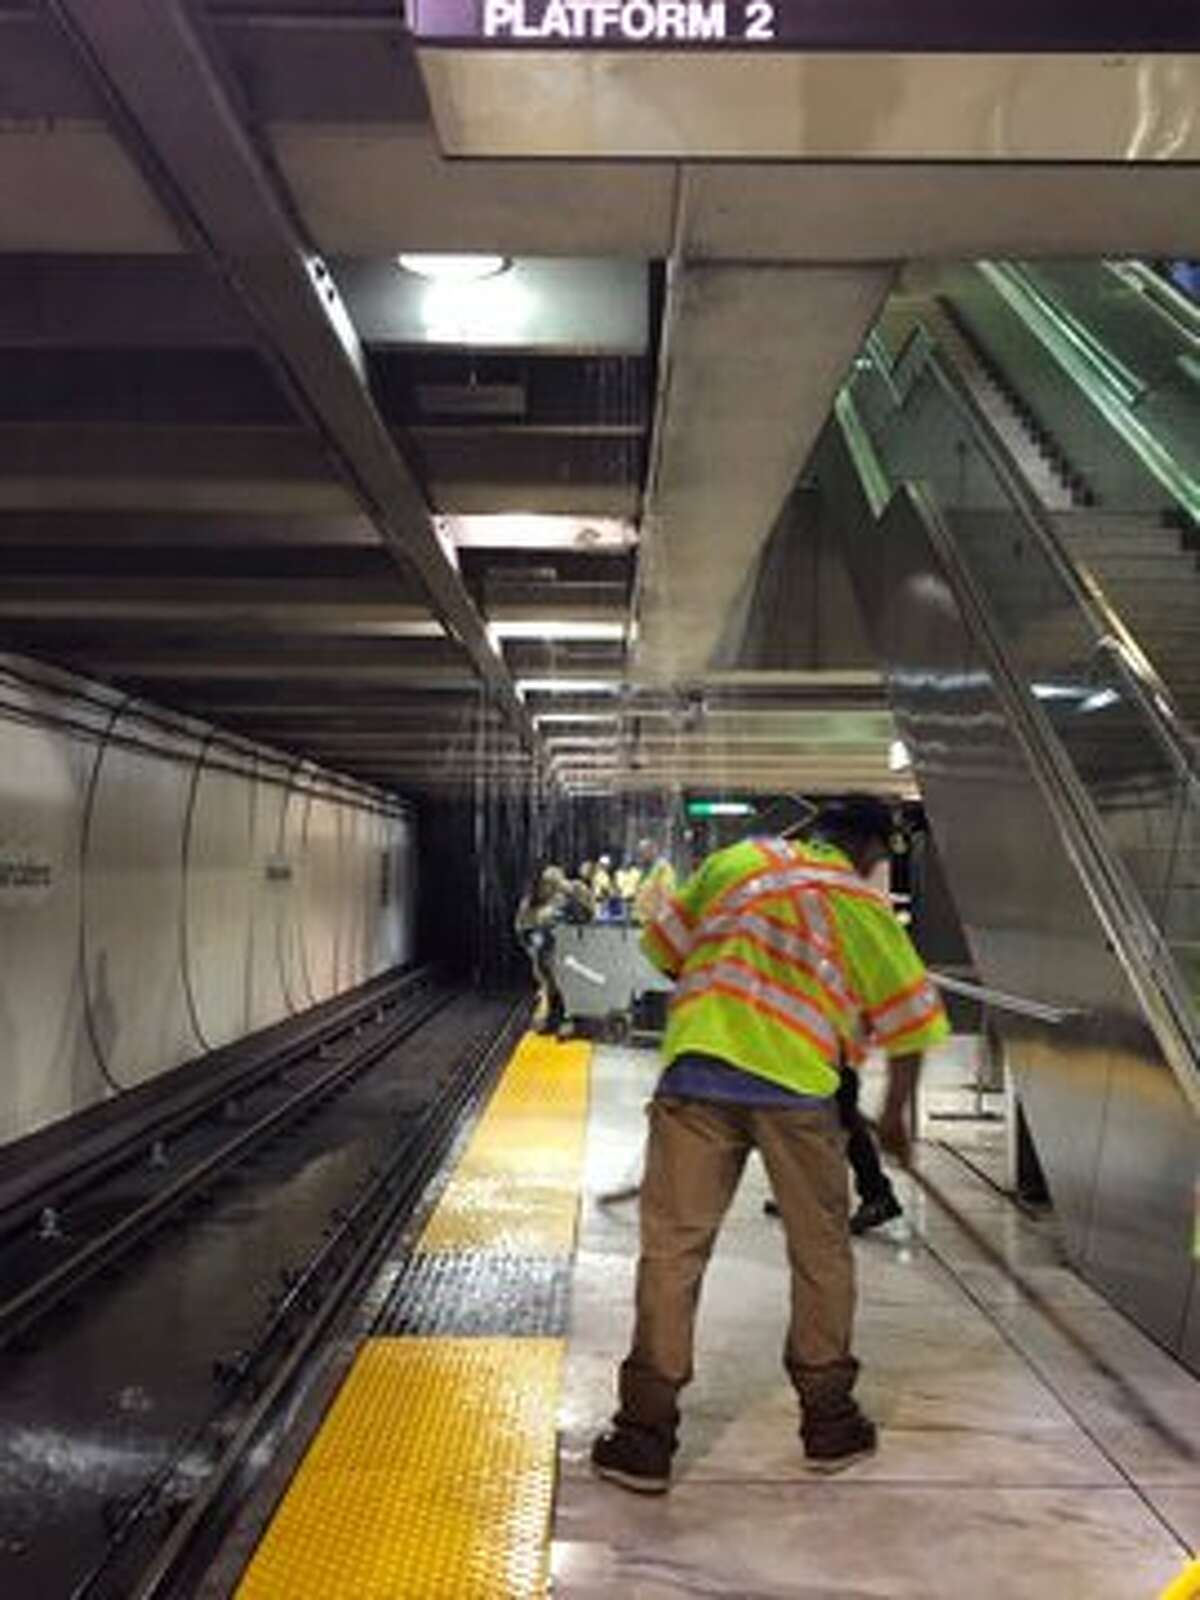 BART employees are dealing with flooding issues at the Embarcadero station on Thursday morning, July 18, 2019. The water was leaking from the SF Muni platform above.